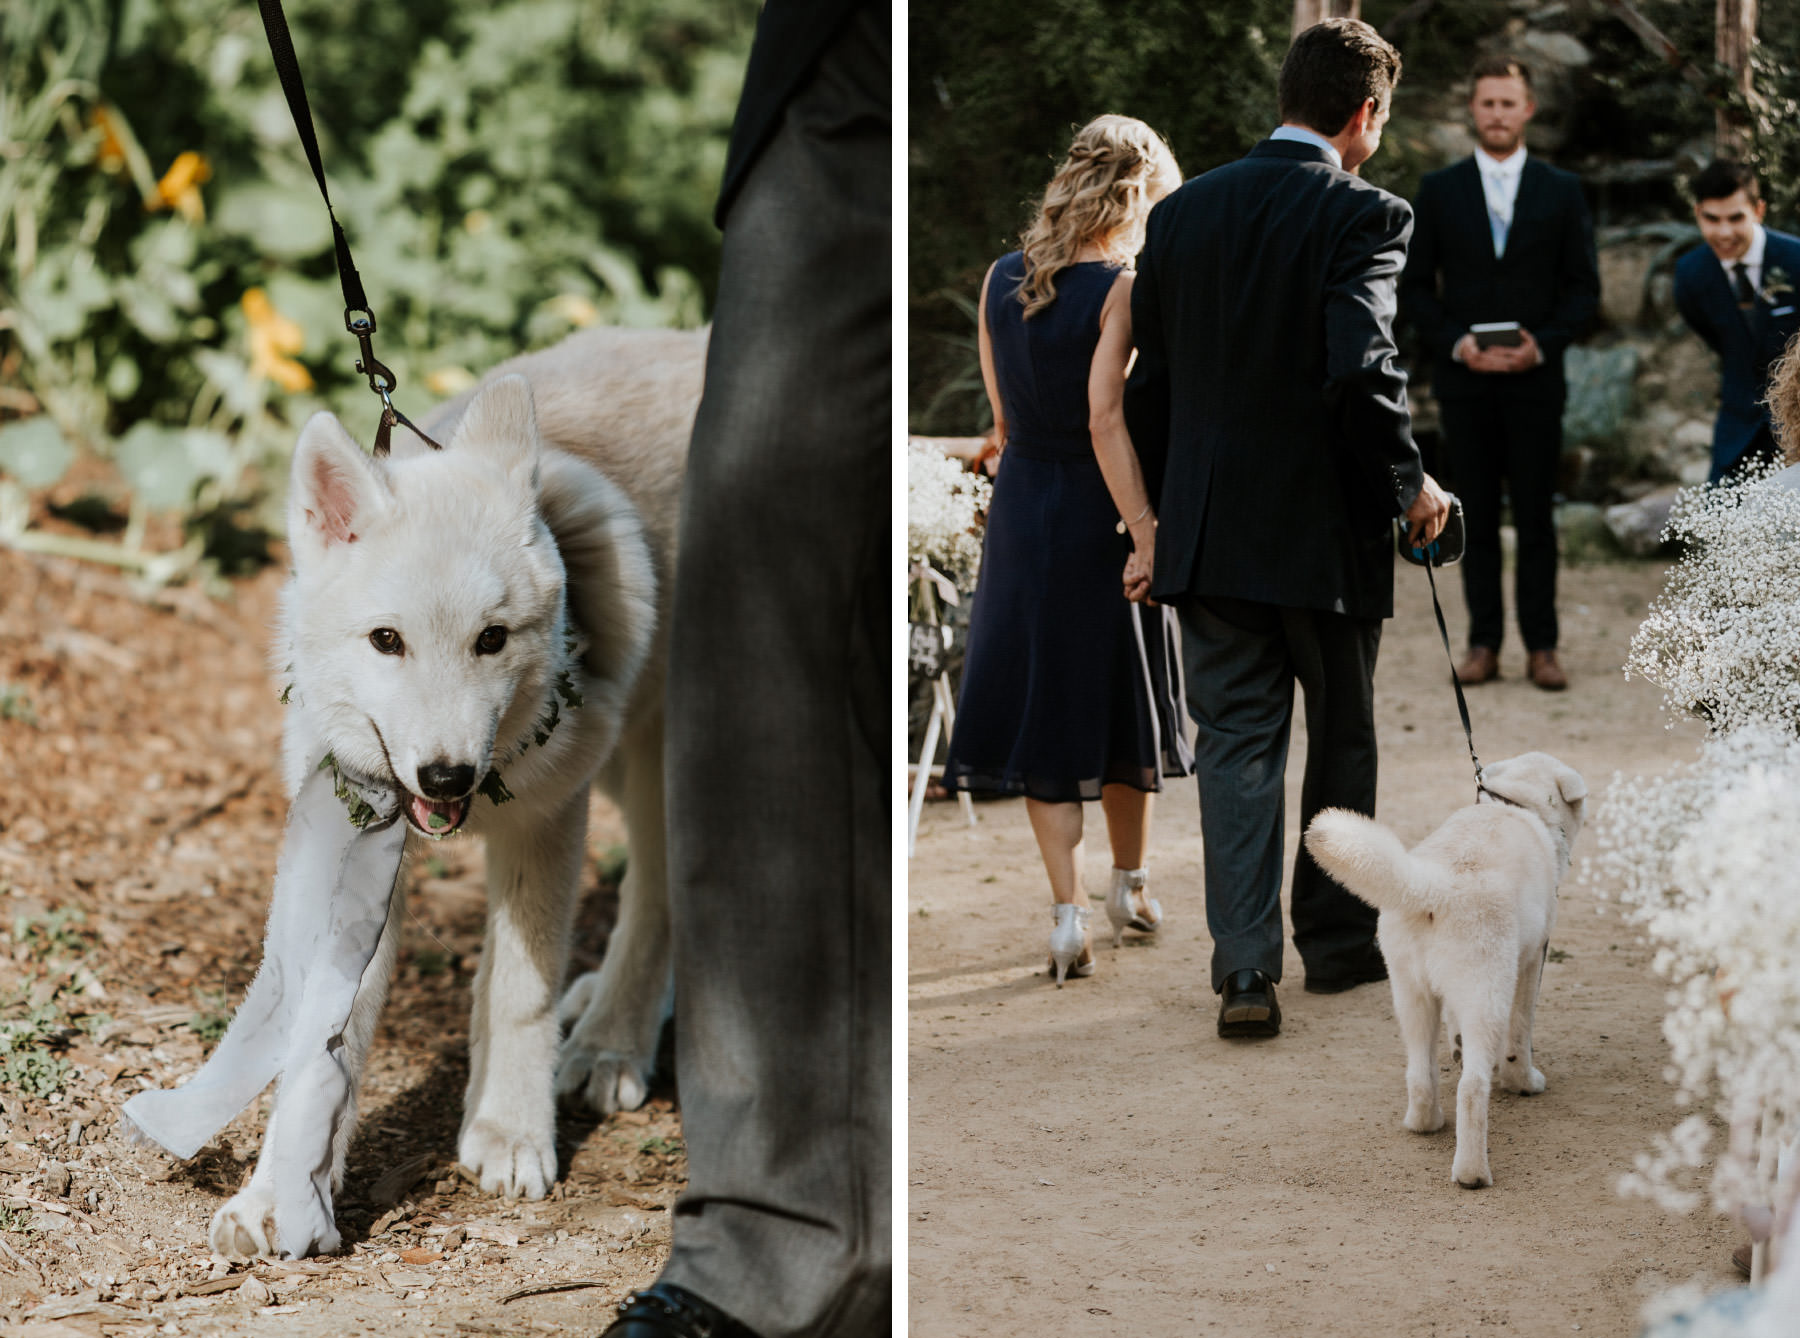 Wolf dog walking down wedding aisle